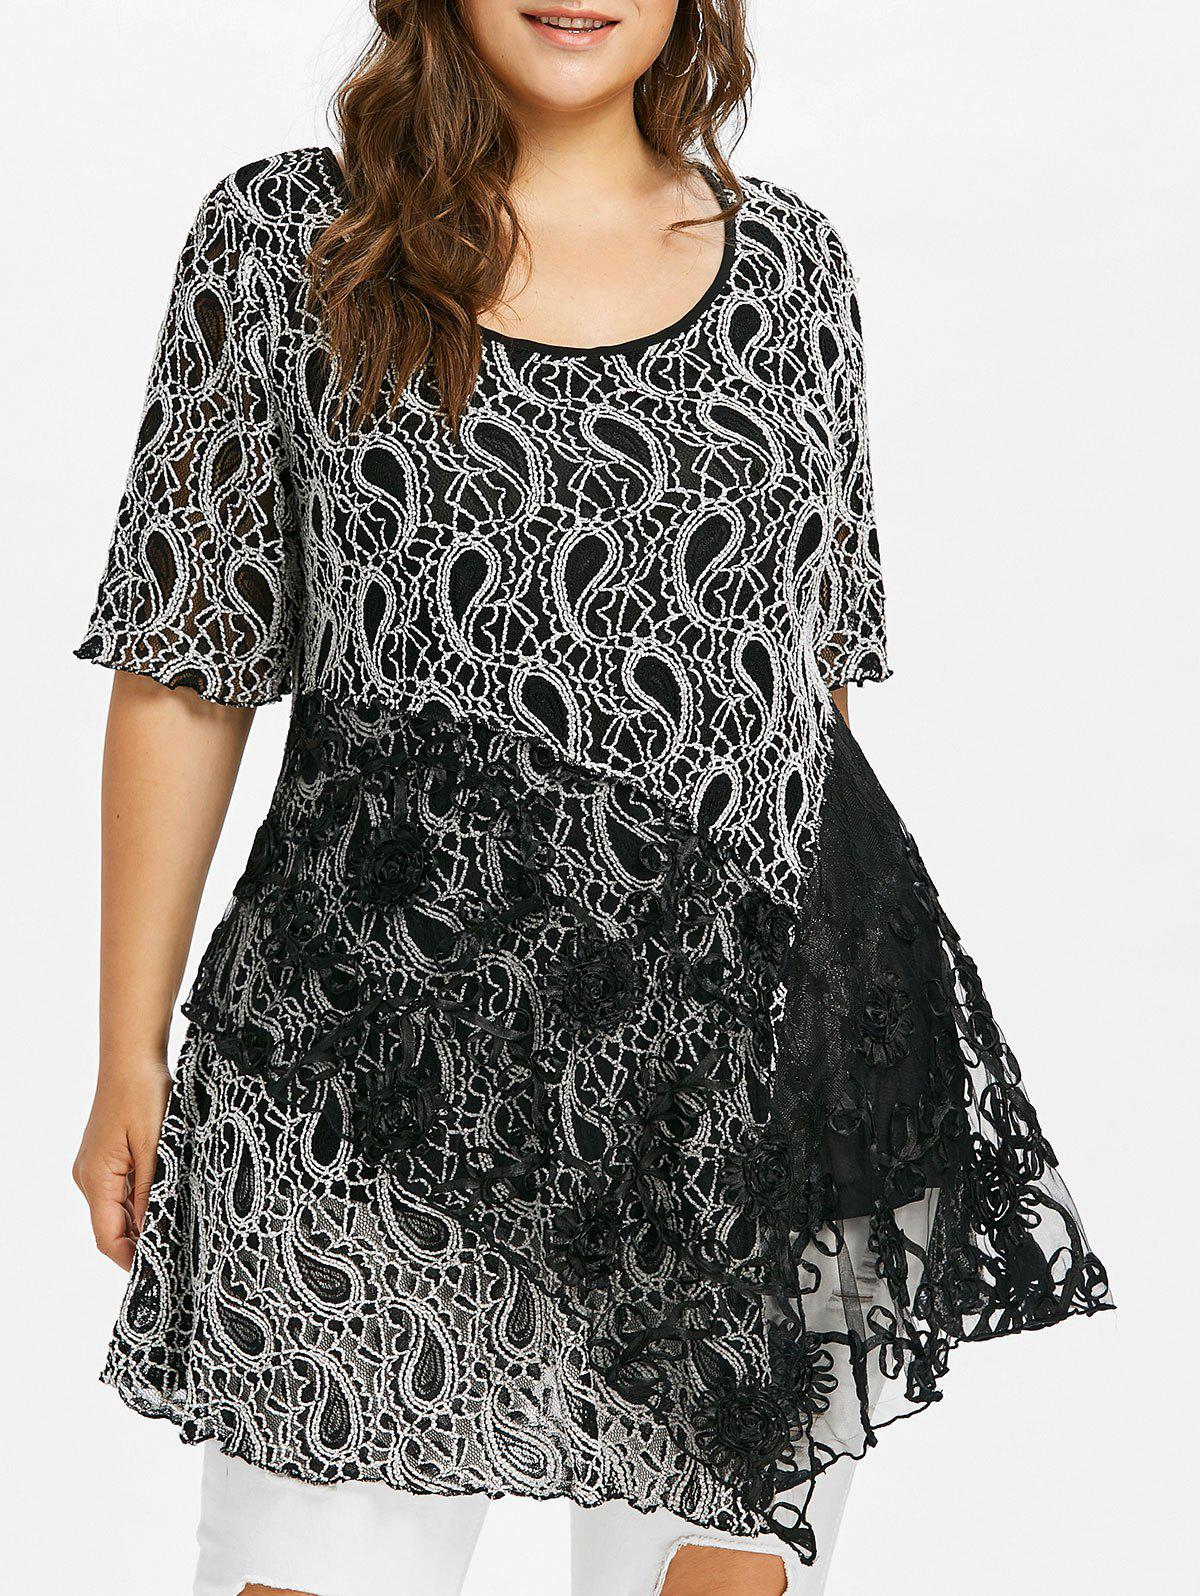 Plus Size Paisley Floral Lace Swing T-shirt